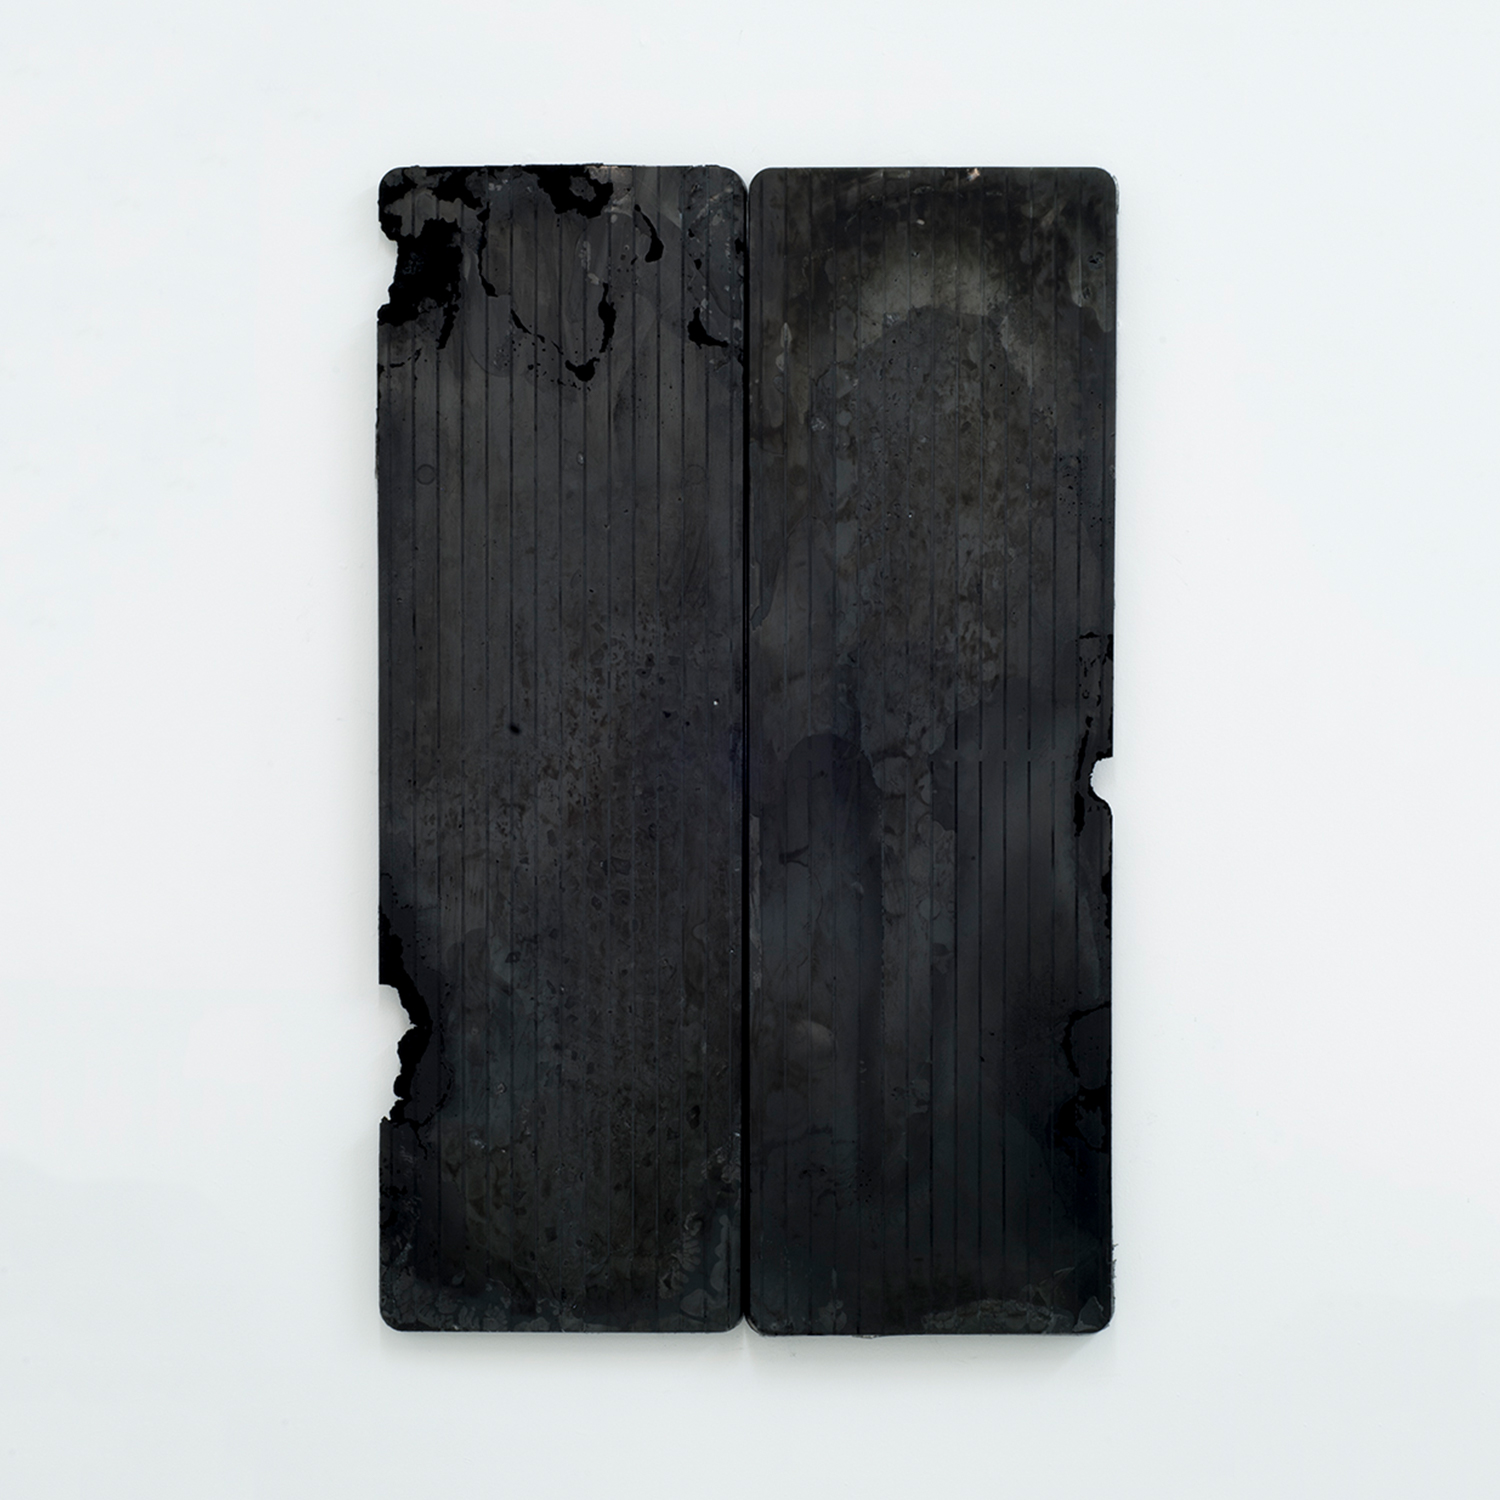 01_CarbonFormDiptych_MAIN.jpg